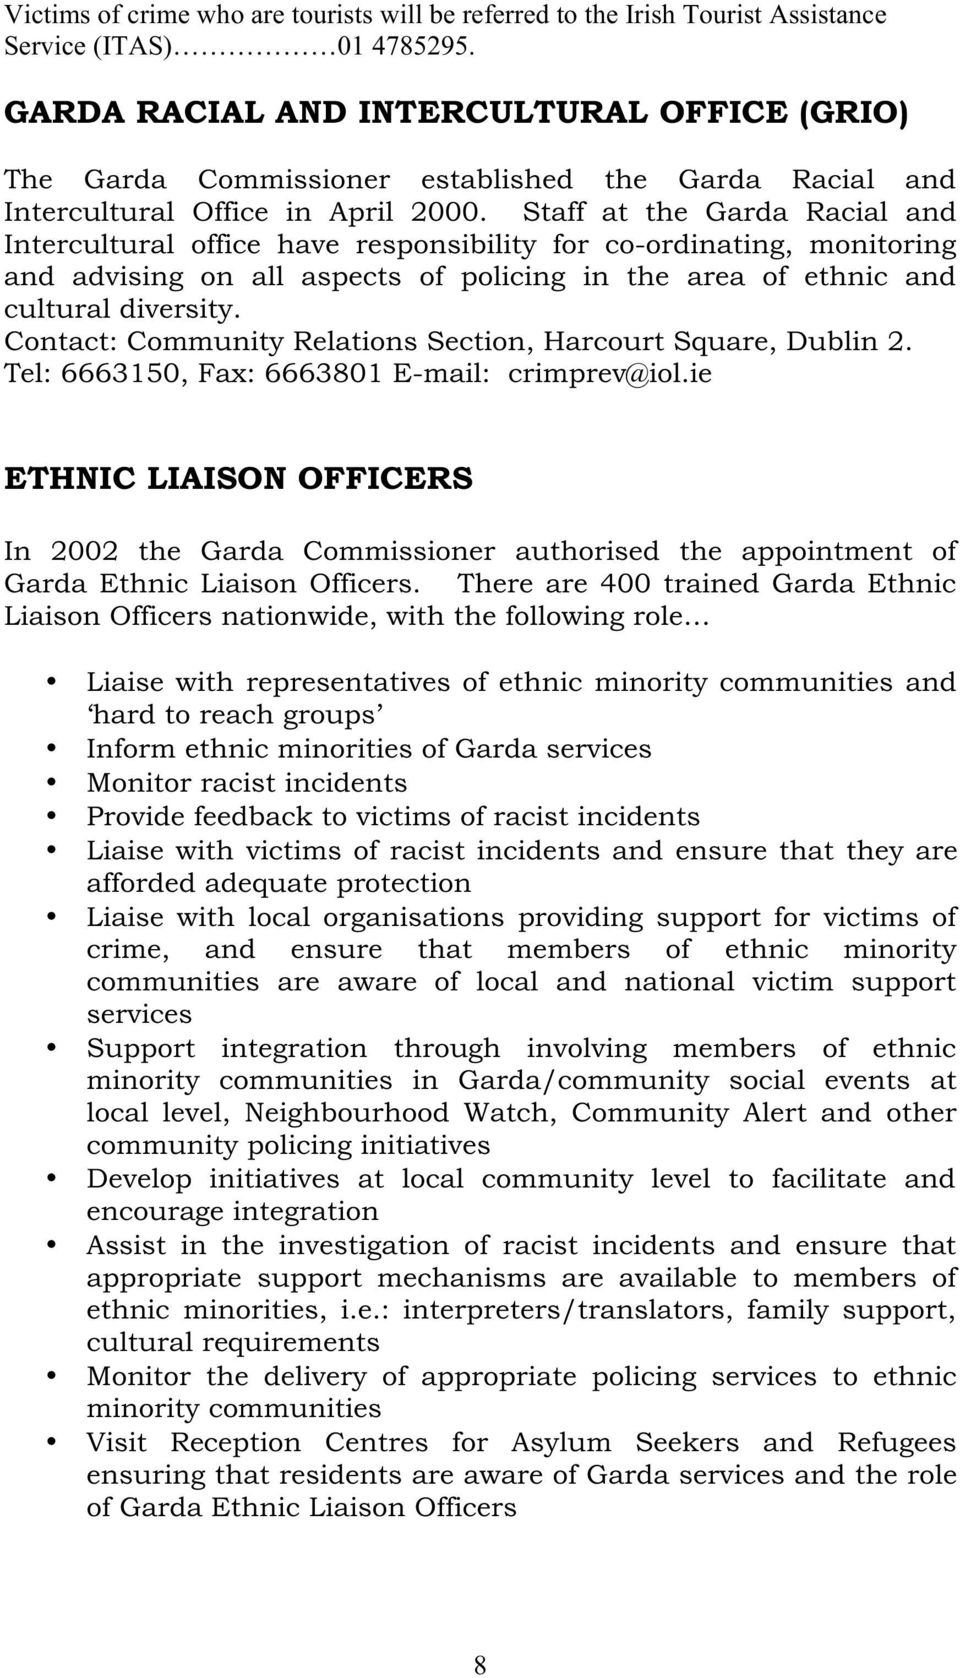 Staff at the Garda Racial and Intercultural office have responsibility for co-ordinating, monitoring and advising on all aspects of policing in the area of ethnic and cultural diversity.